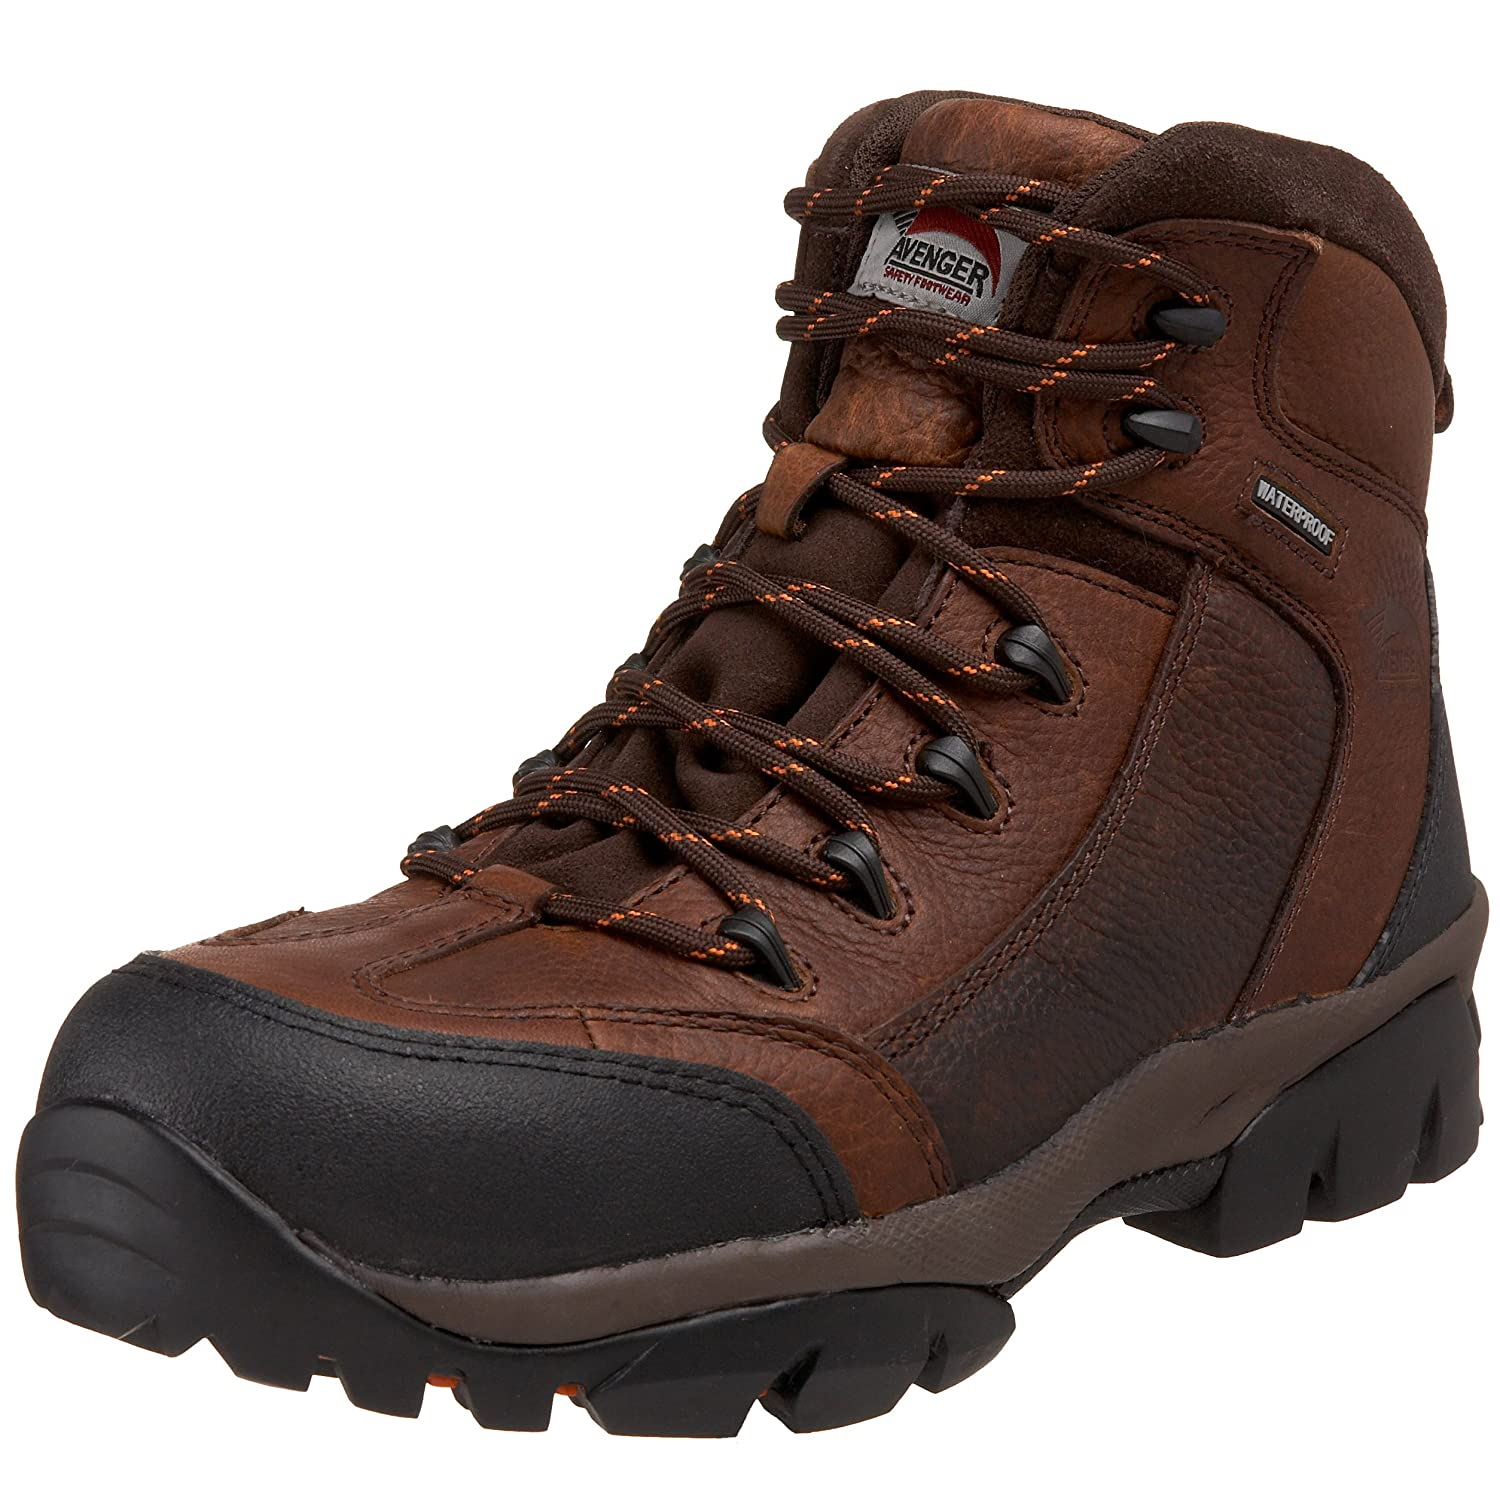 Avenger 7244 Leather Waterproof Comp Toe No Exposed Metal EH Work Boot